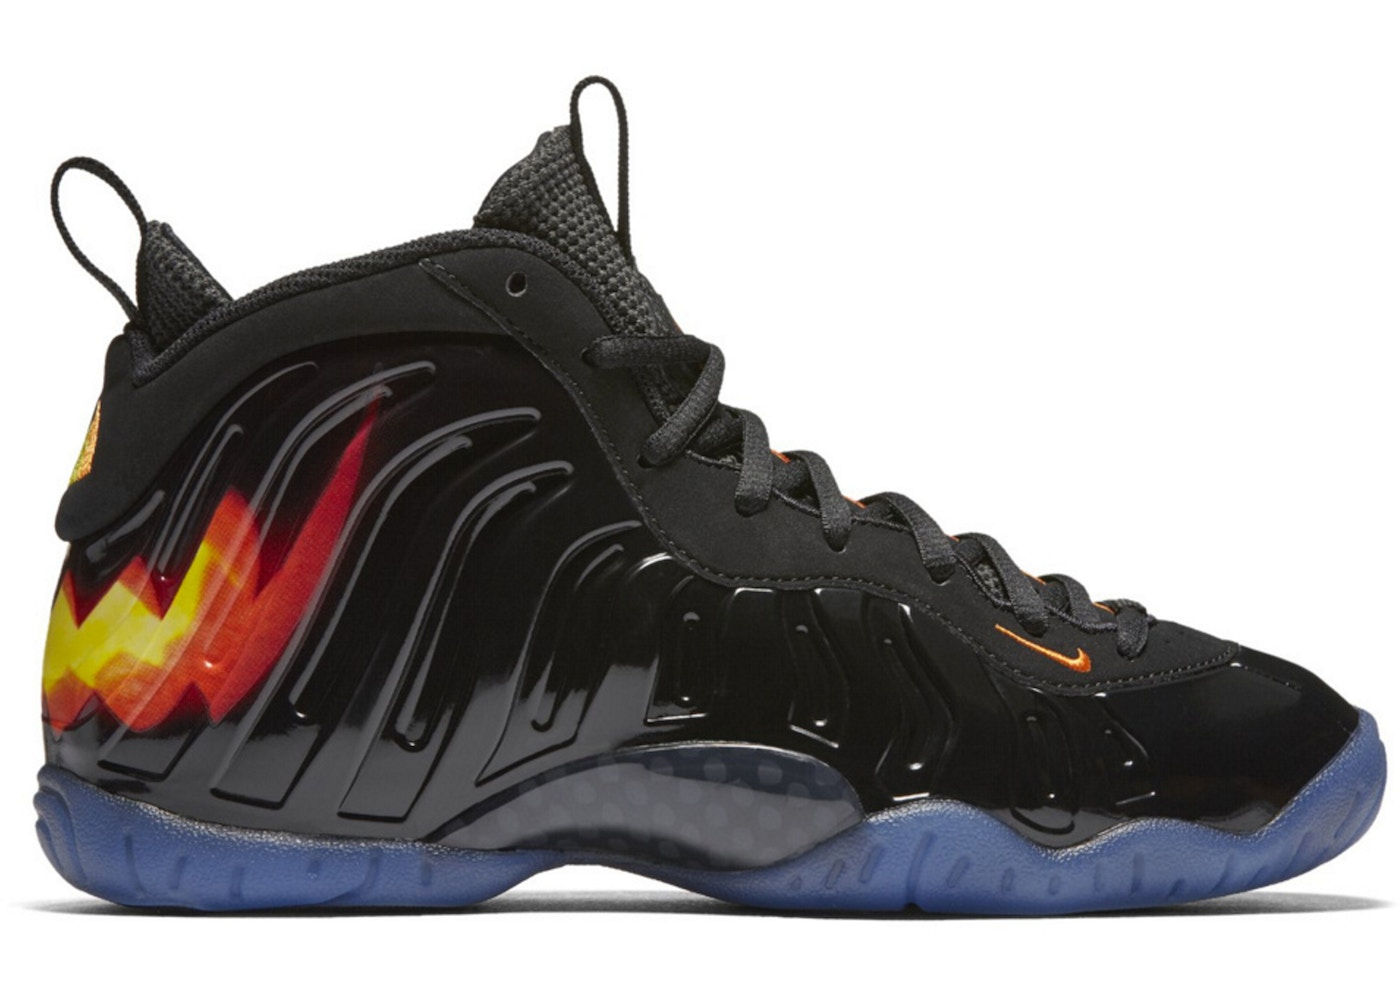 lowest price c5a0c 24be0 Air Foamposite One Halloween (GS) - 846077-002